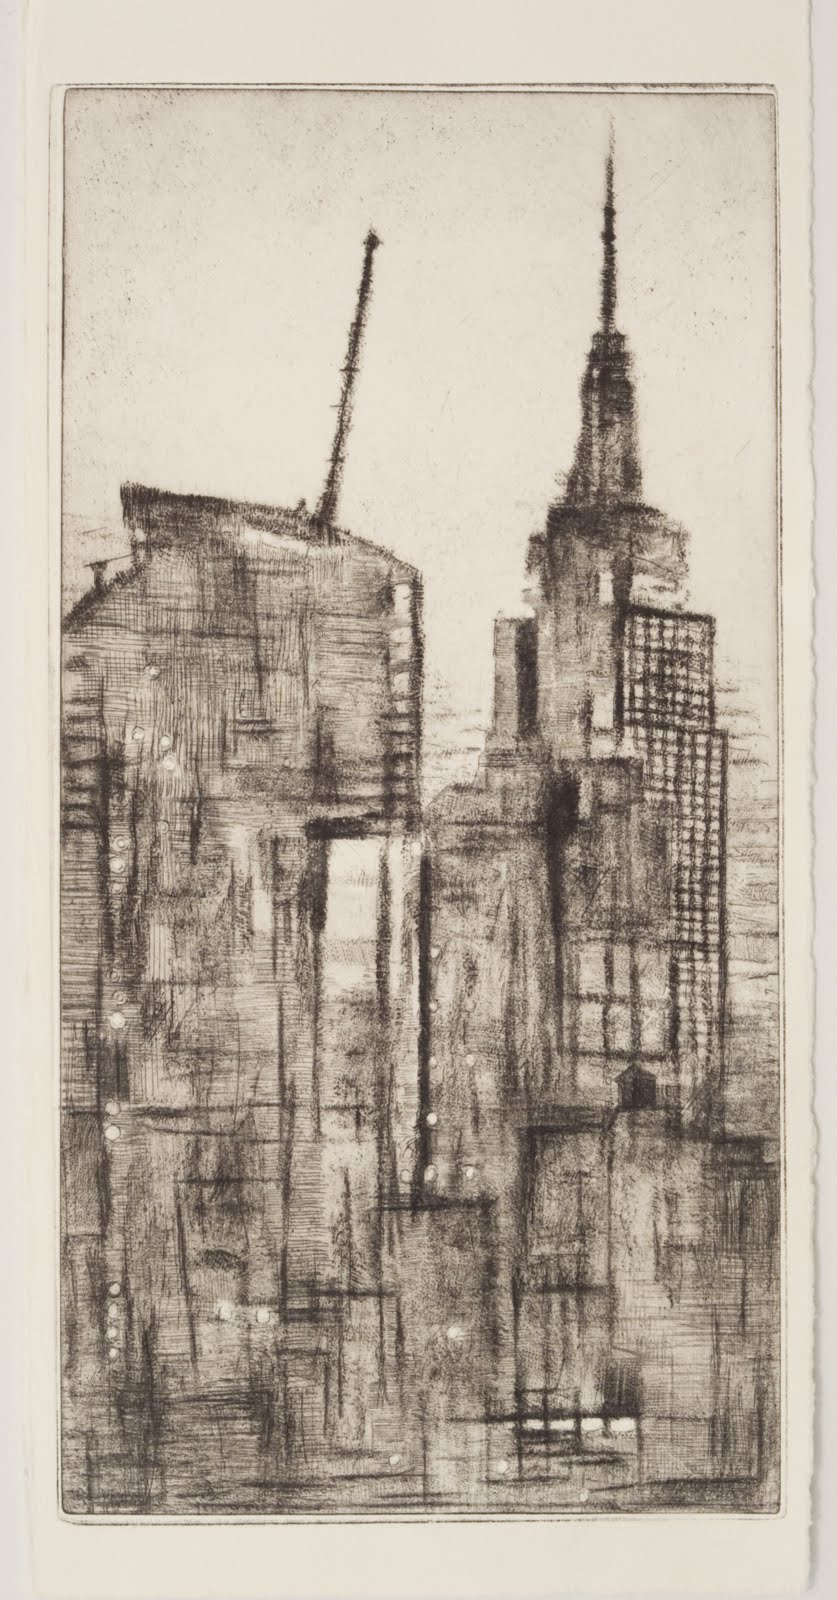 """Constructing a Tower"", drypoint etching (1 of 2 variations),13.5 x 7 in."